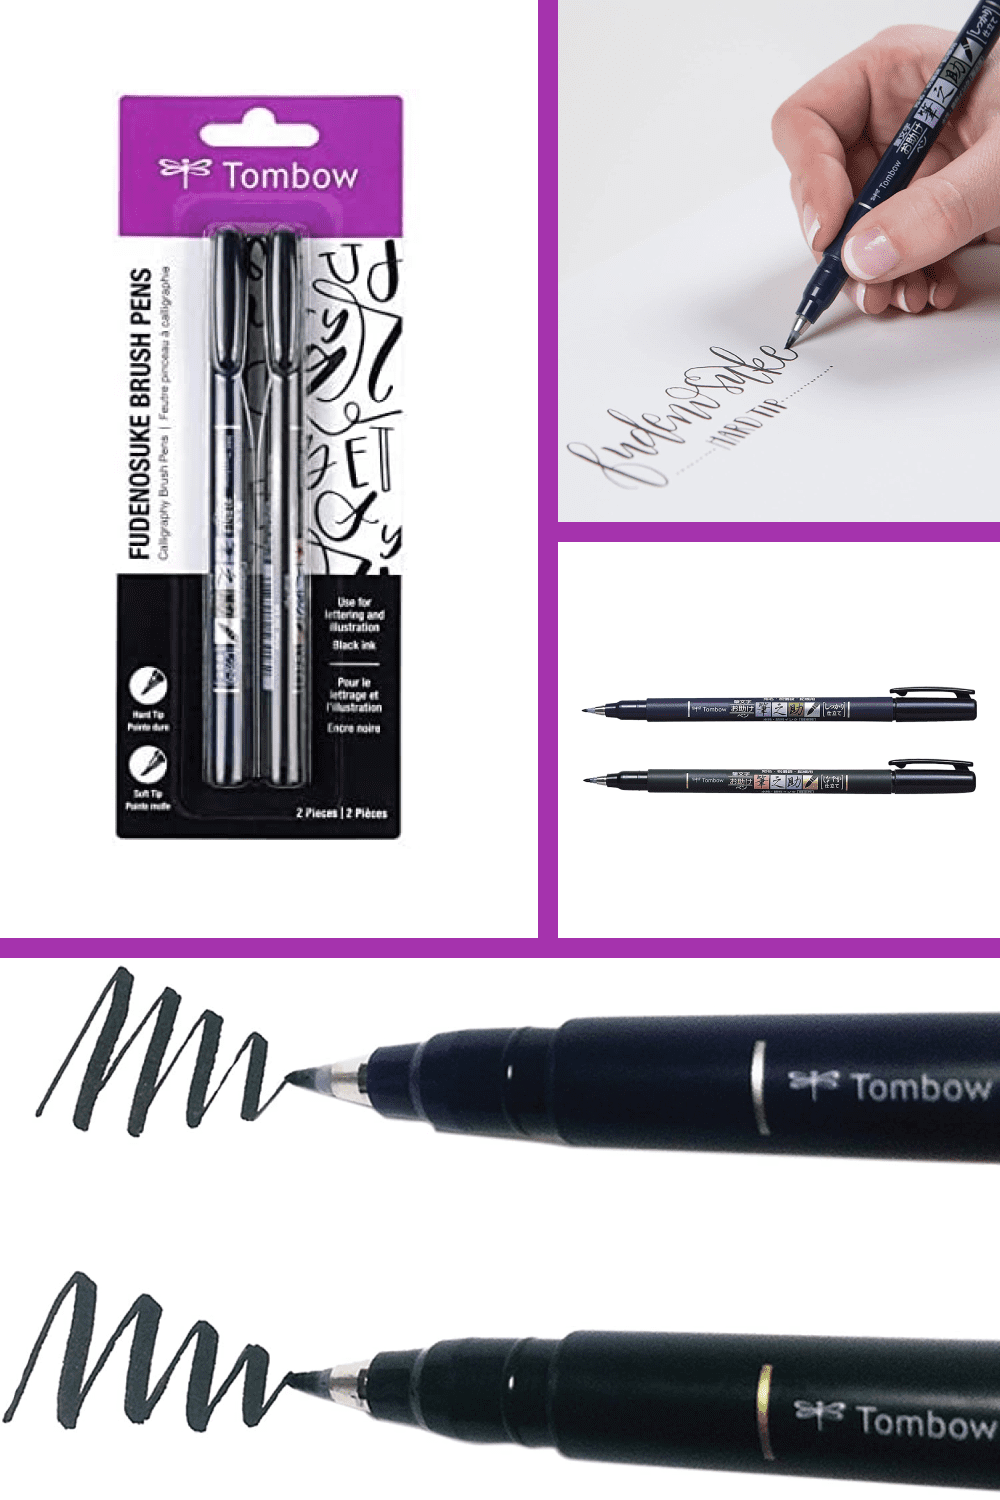 Contains both the soft and hard tip Fudenosuke Brush Pens.